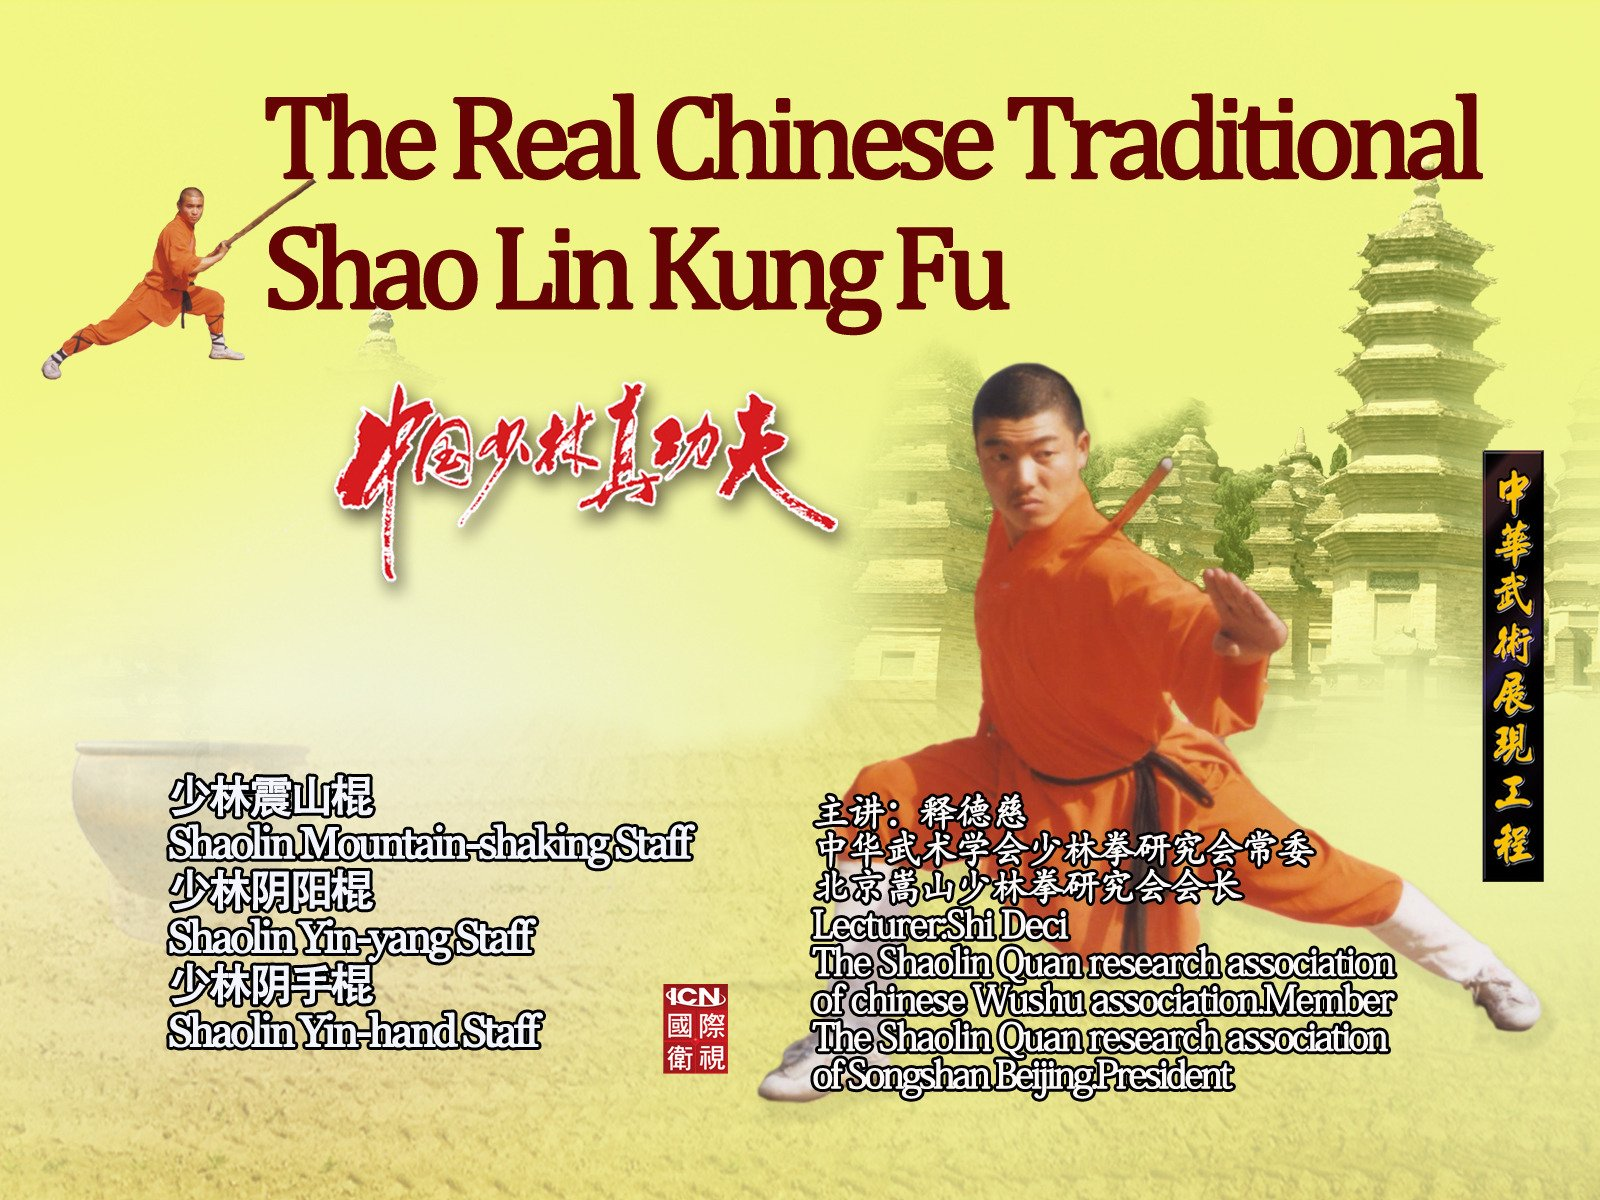 The Real Chinese Traditional Shao Lin Kung Fu - Season 7